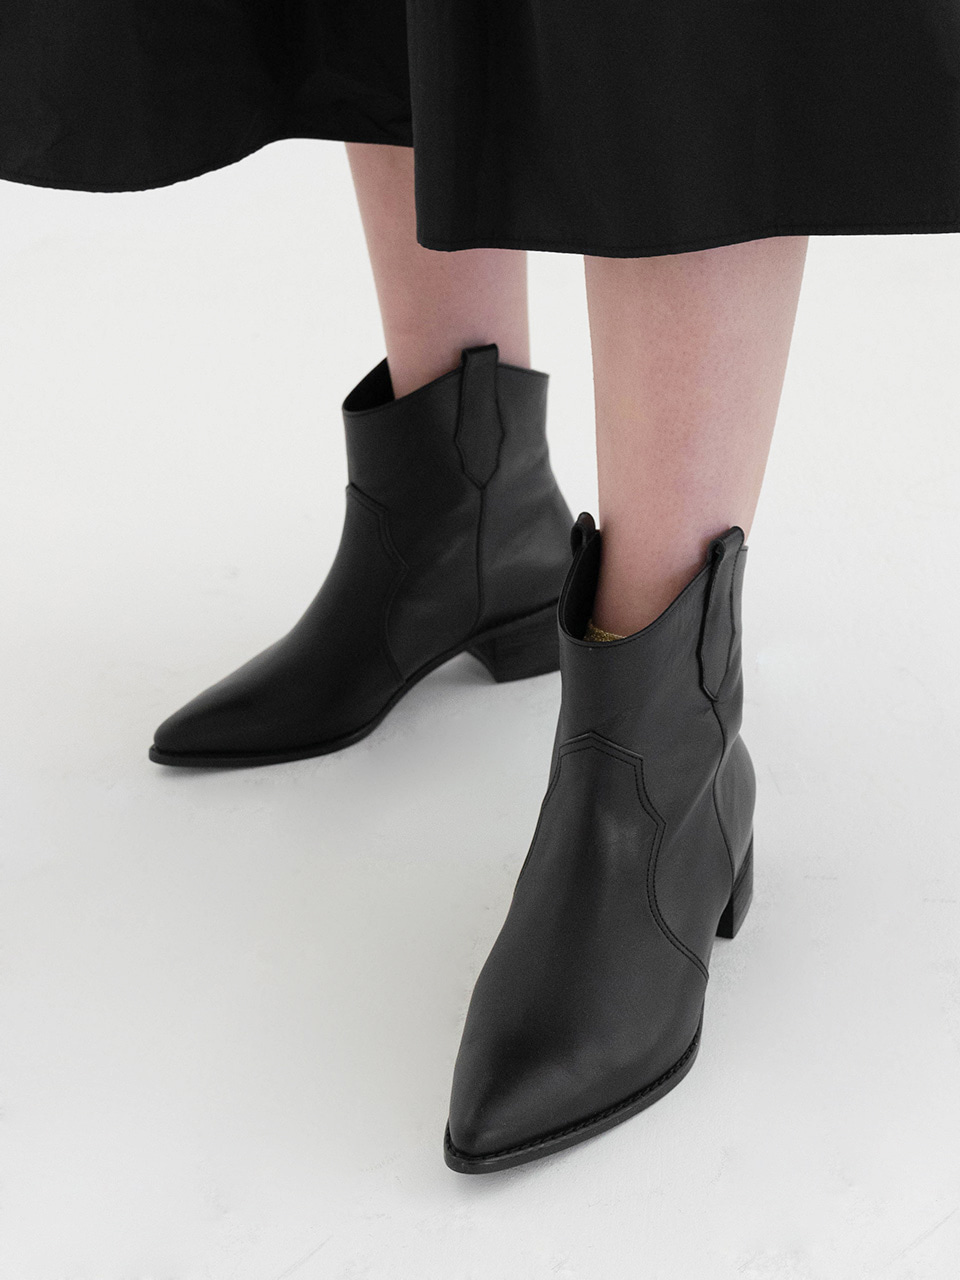 Mrc064 Weston Ankle Boots (Black)